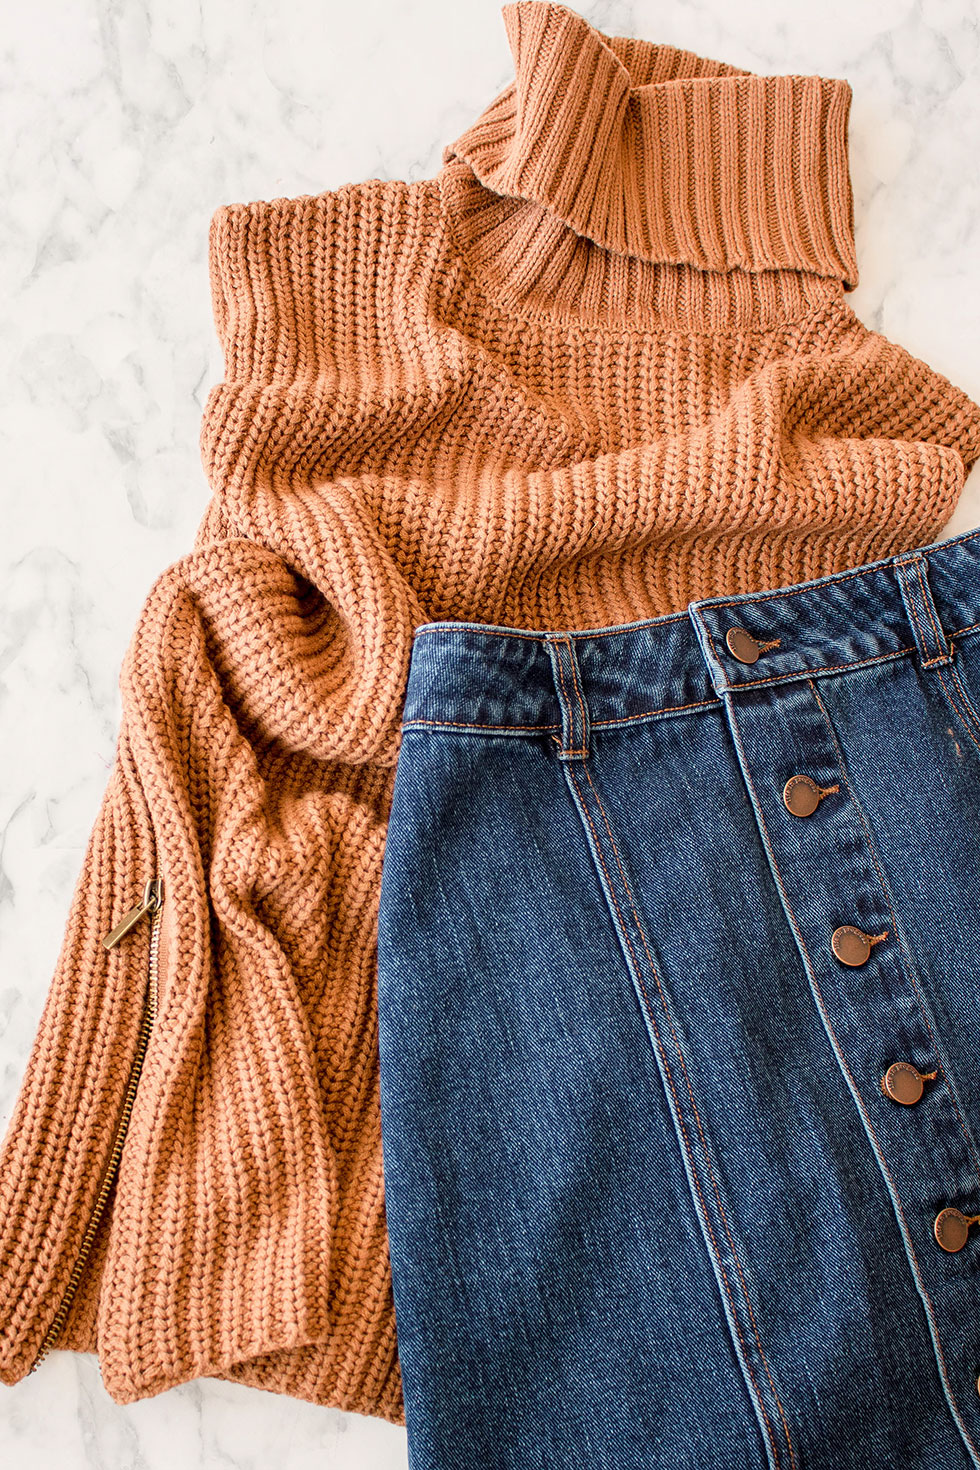 5 Fashionable Fall Items to Try Right Now Forever 21 Buttoned A-Line Denim Skirt and Turtleneck Tunic